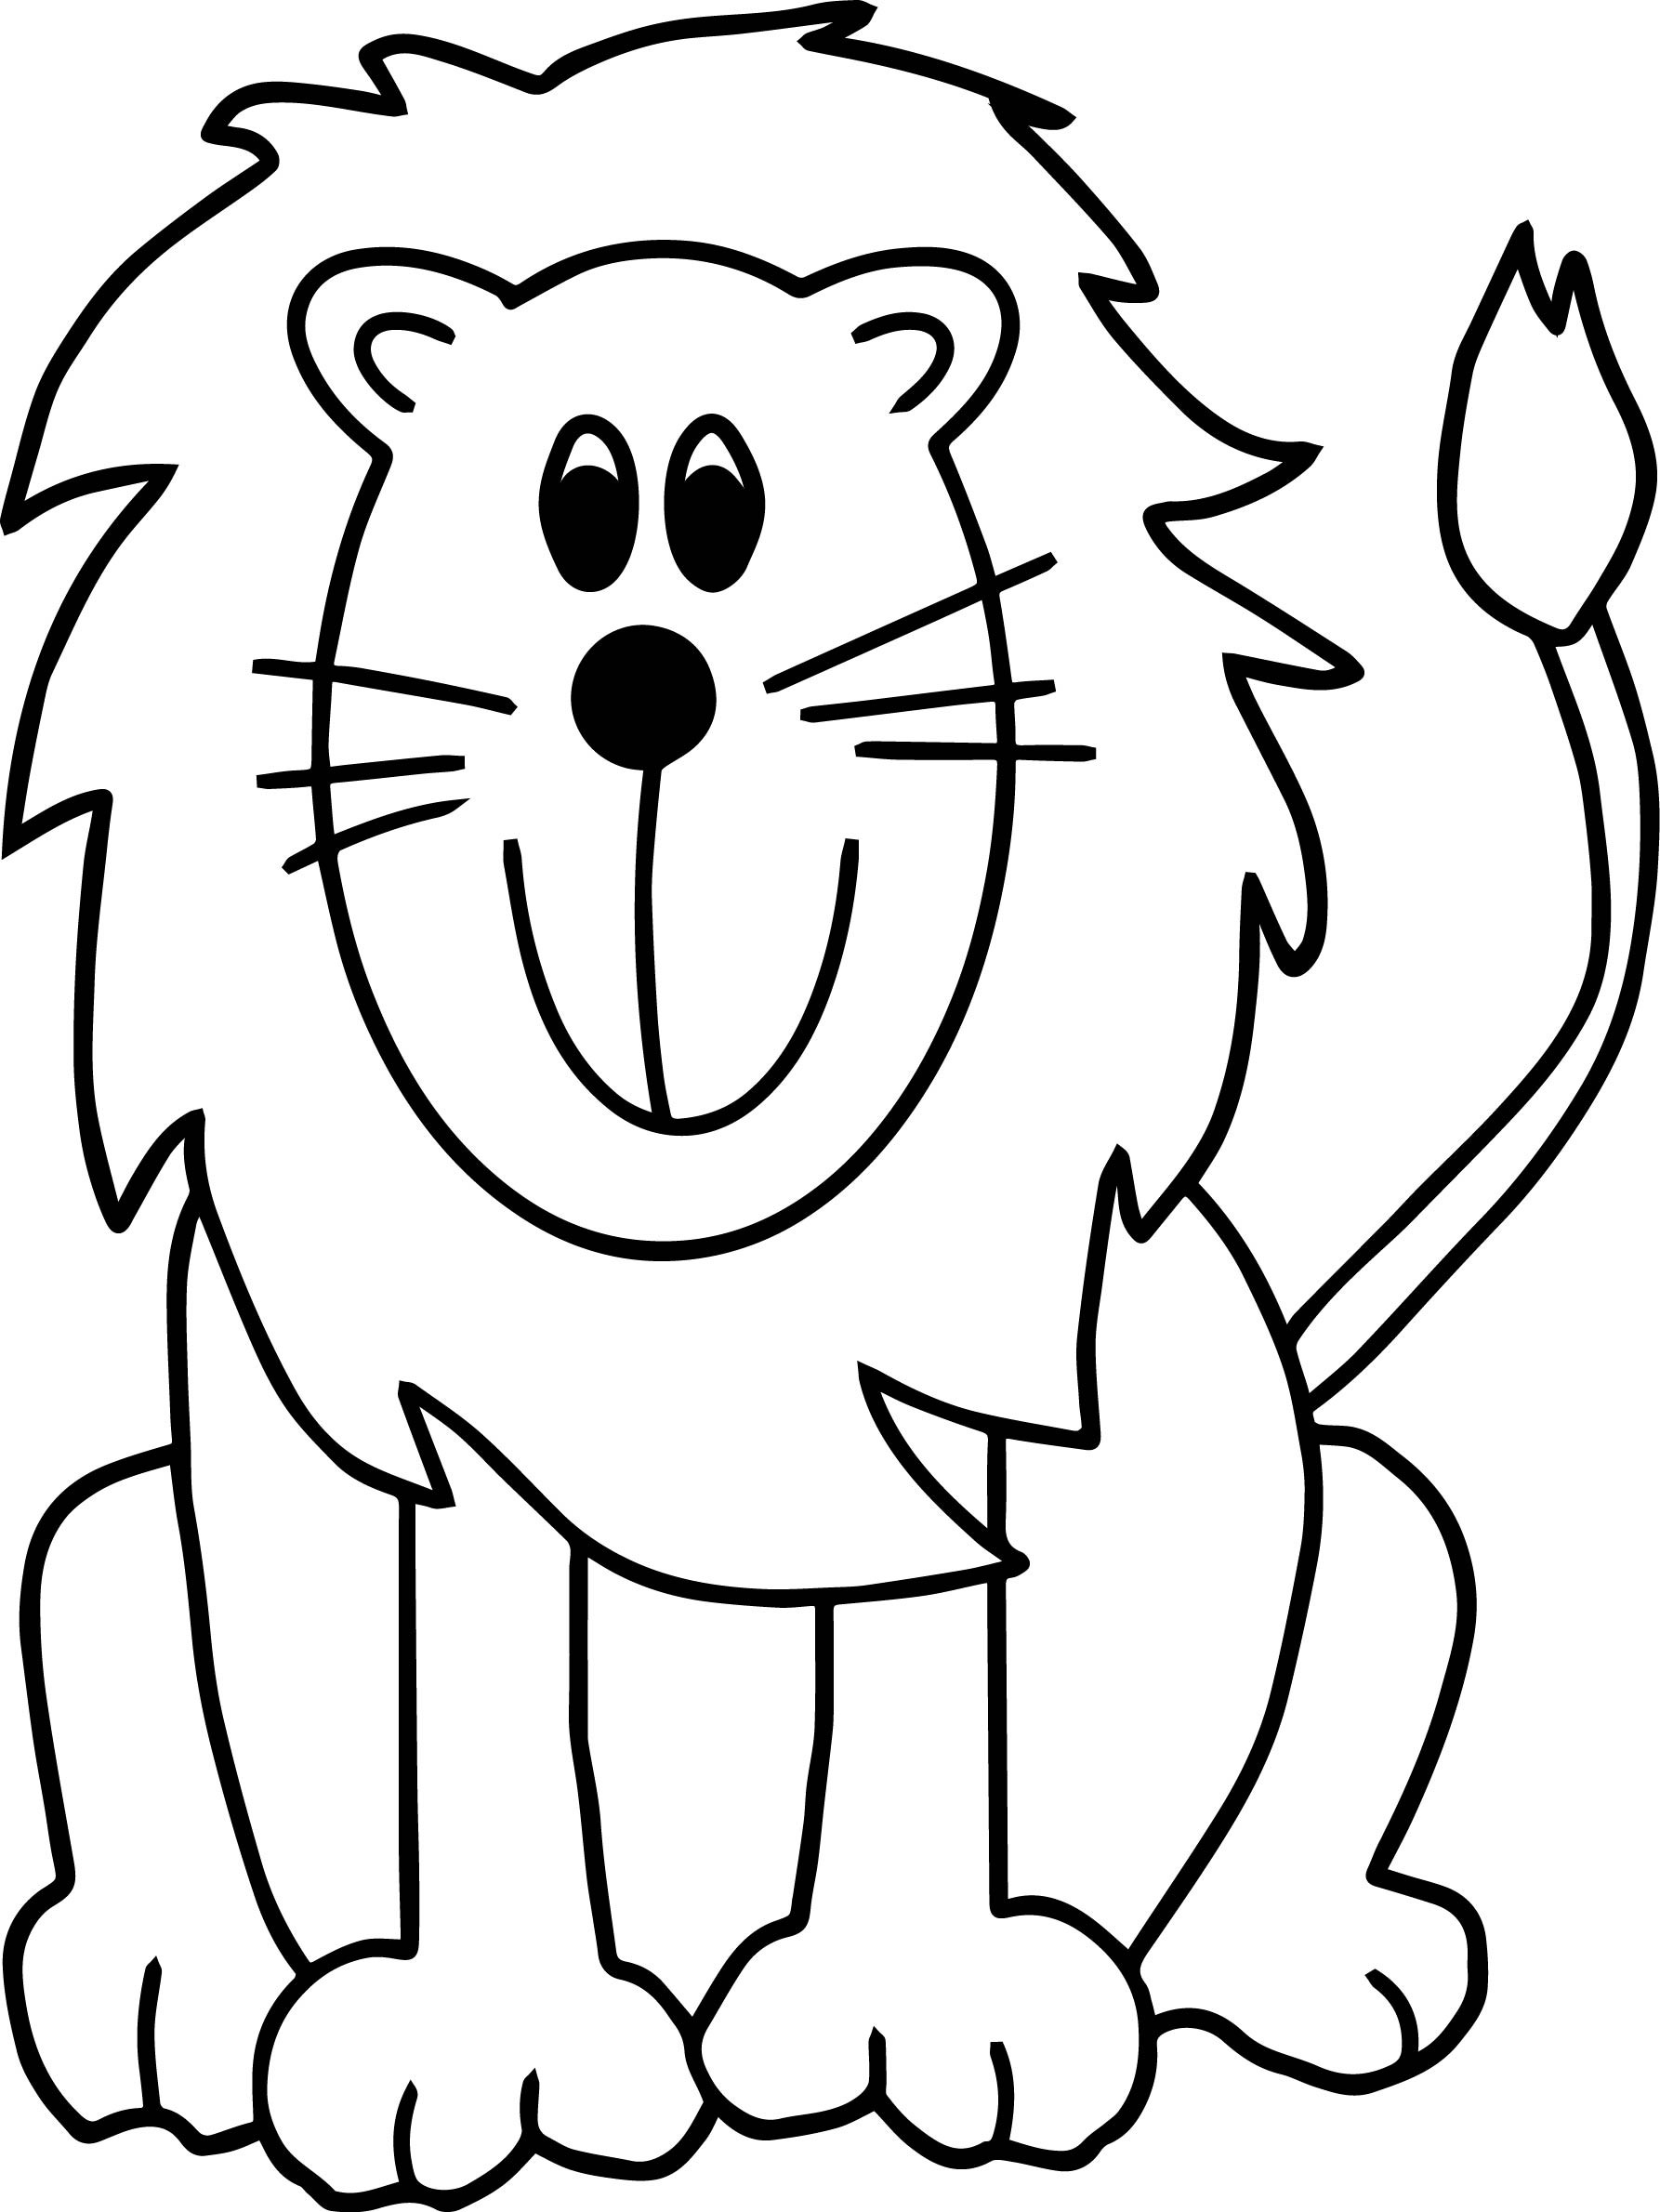 zoo animals coloring pictures zoo animals kids coloring pages with free colouring pictures animals coloring zoo